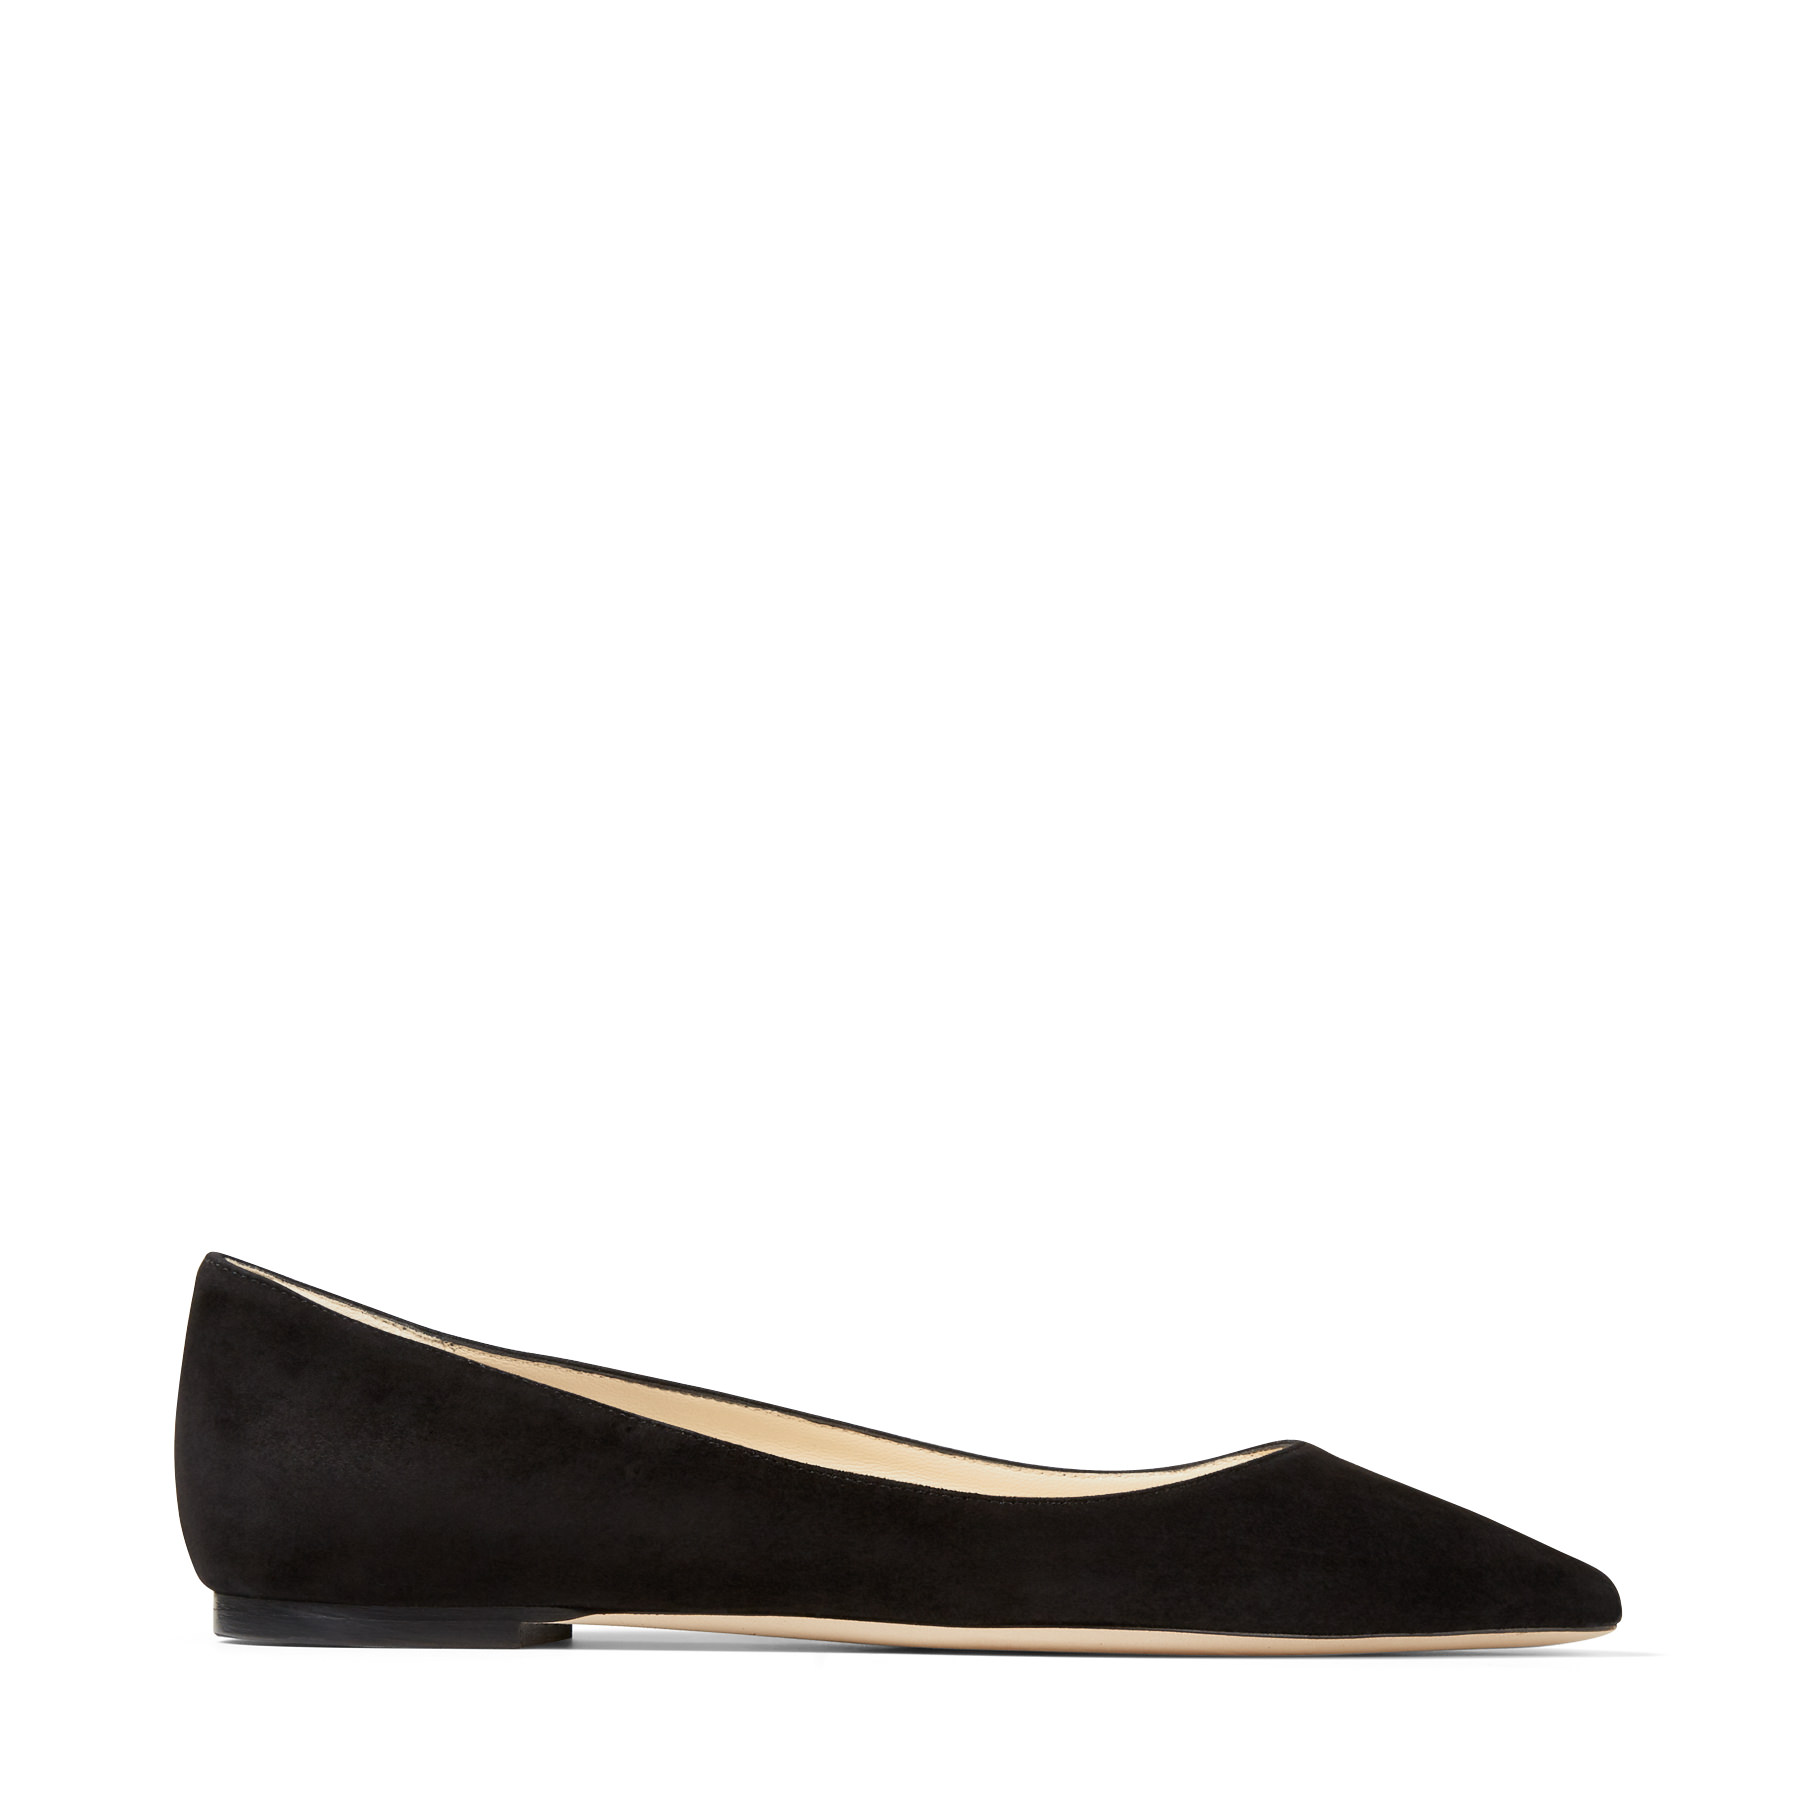 ROMY FLAT Black Suede Pointy Toe Flats by Jimmy Choo